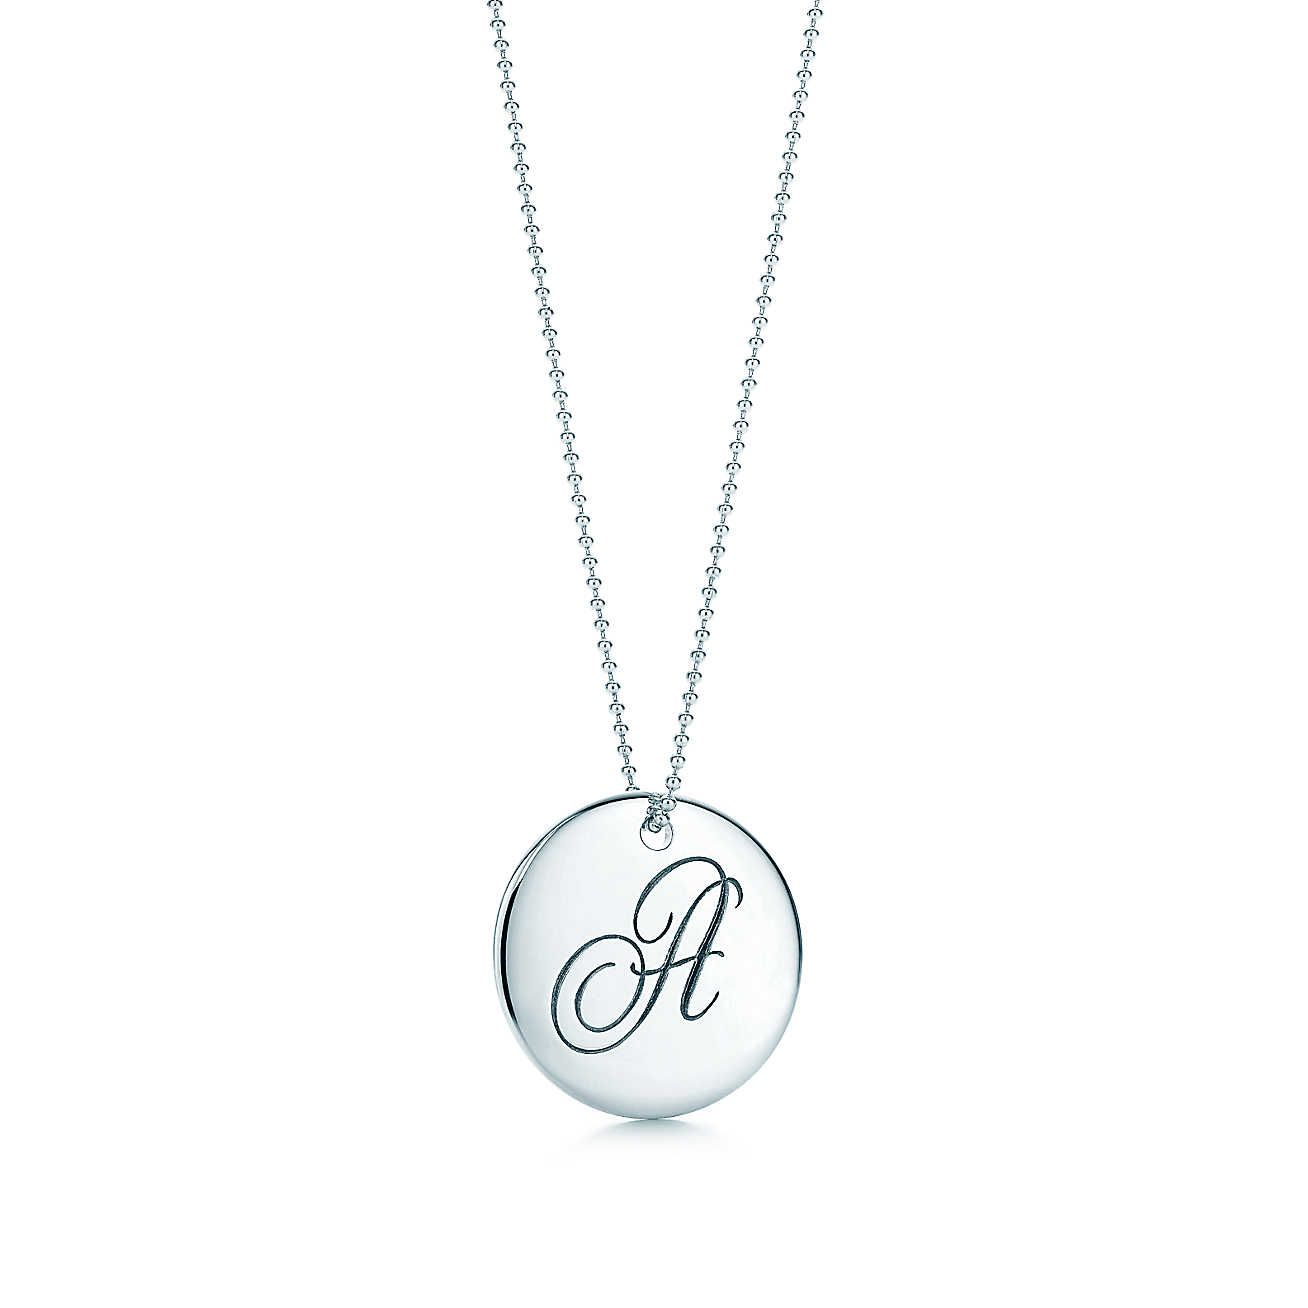 Tiffany notesletter f round pendant round pendant tiffany and tiffany notesletter a round pendant with letter k aloadofball Choice Image